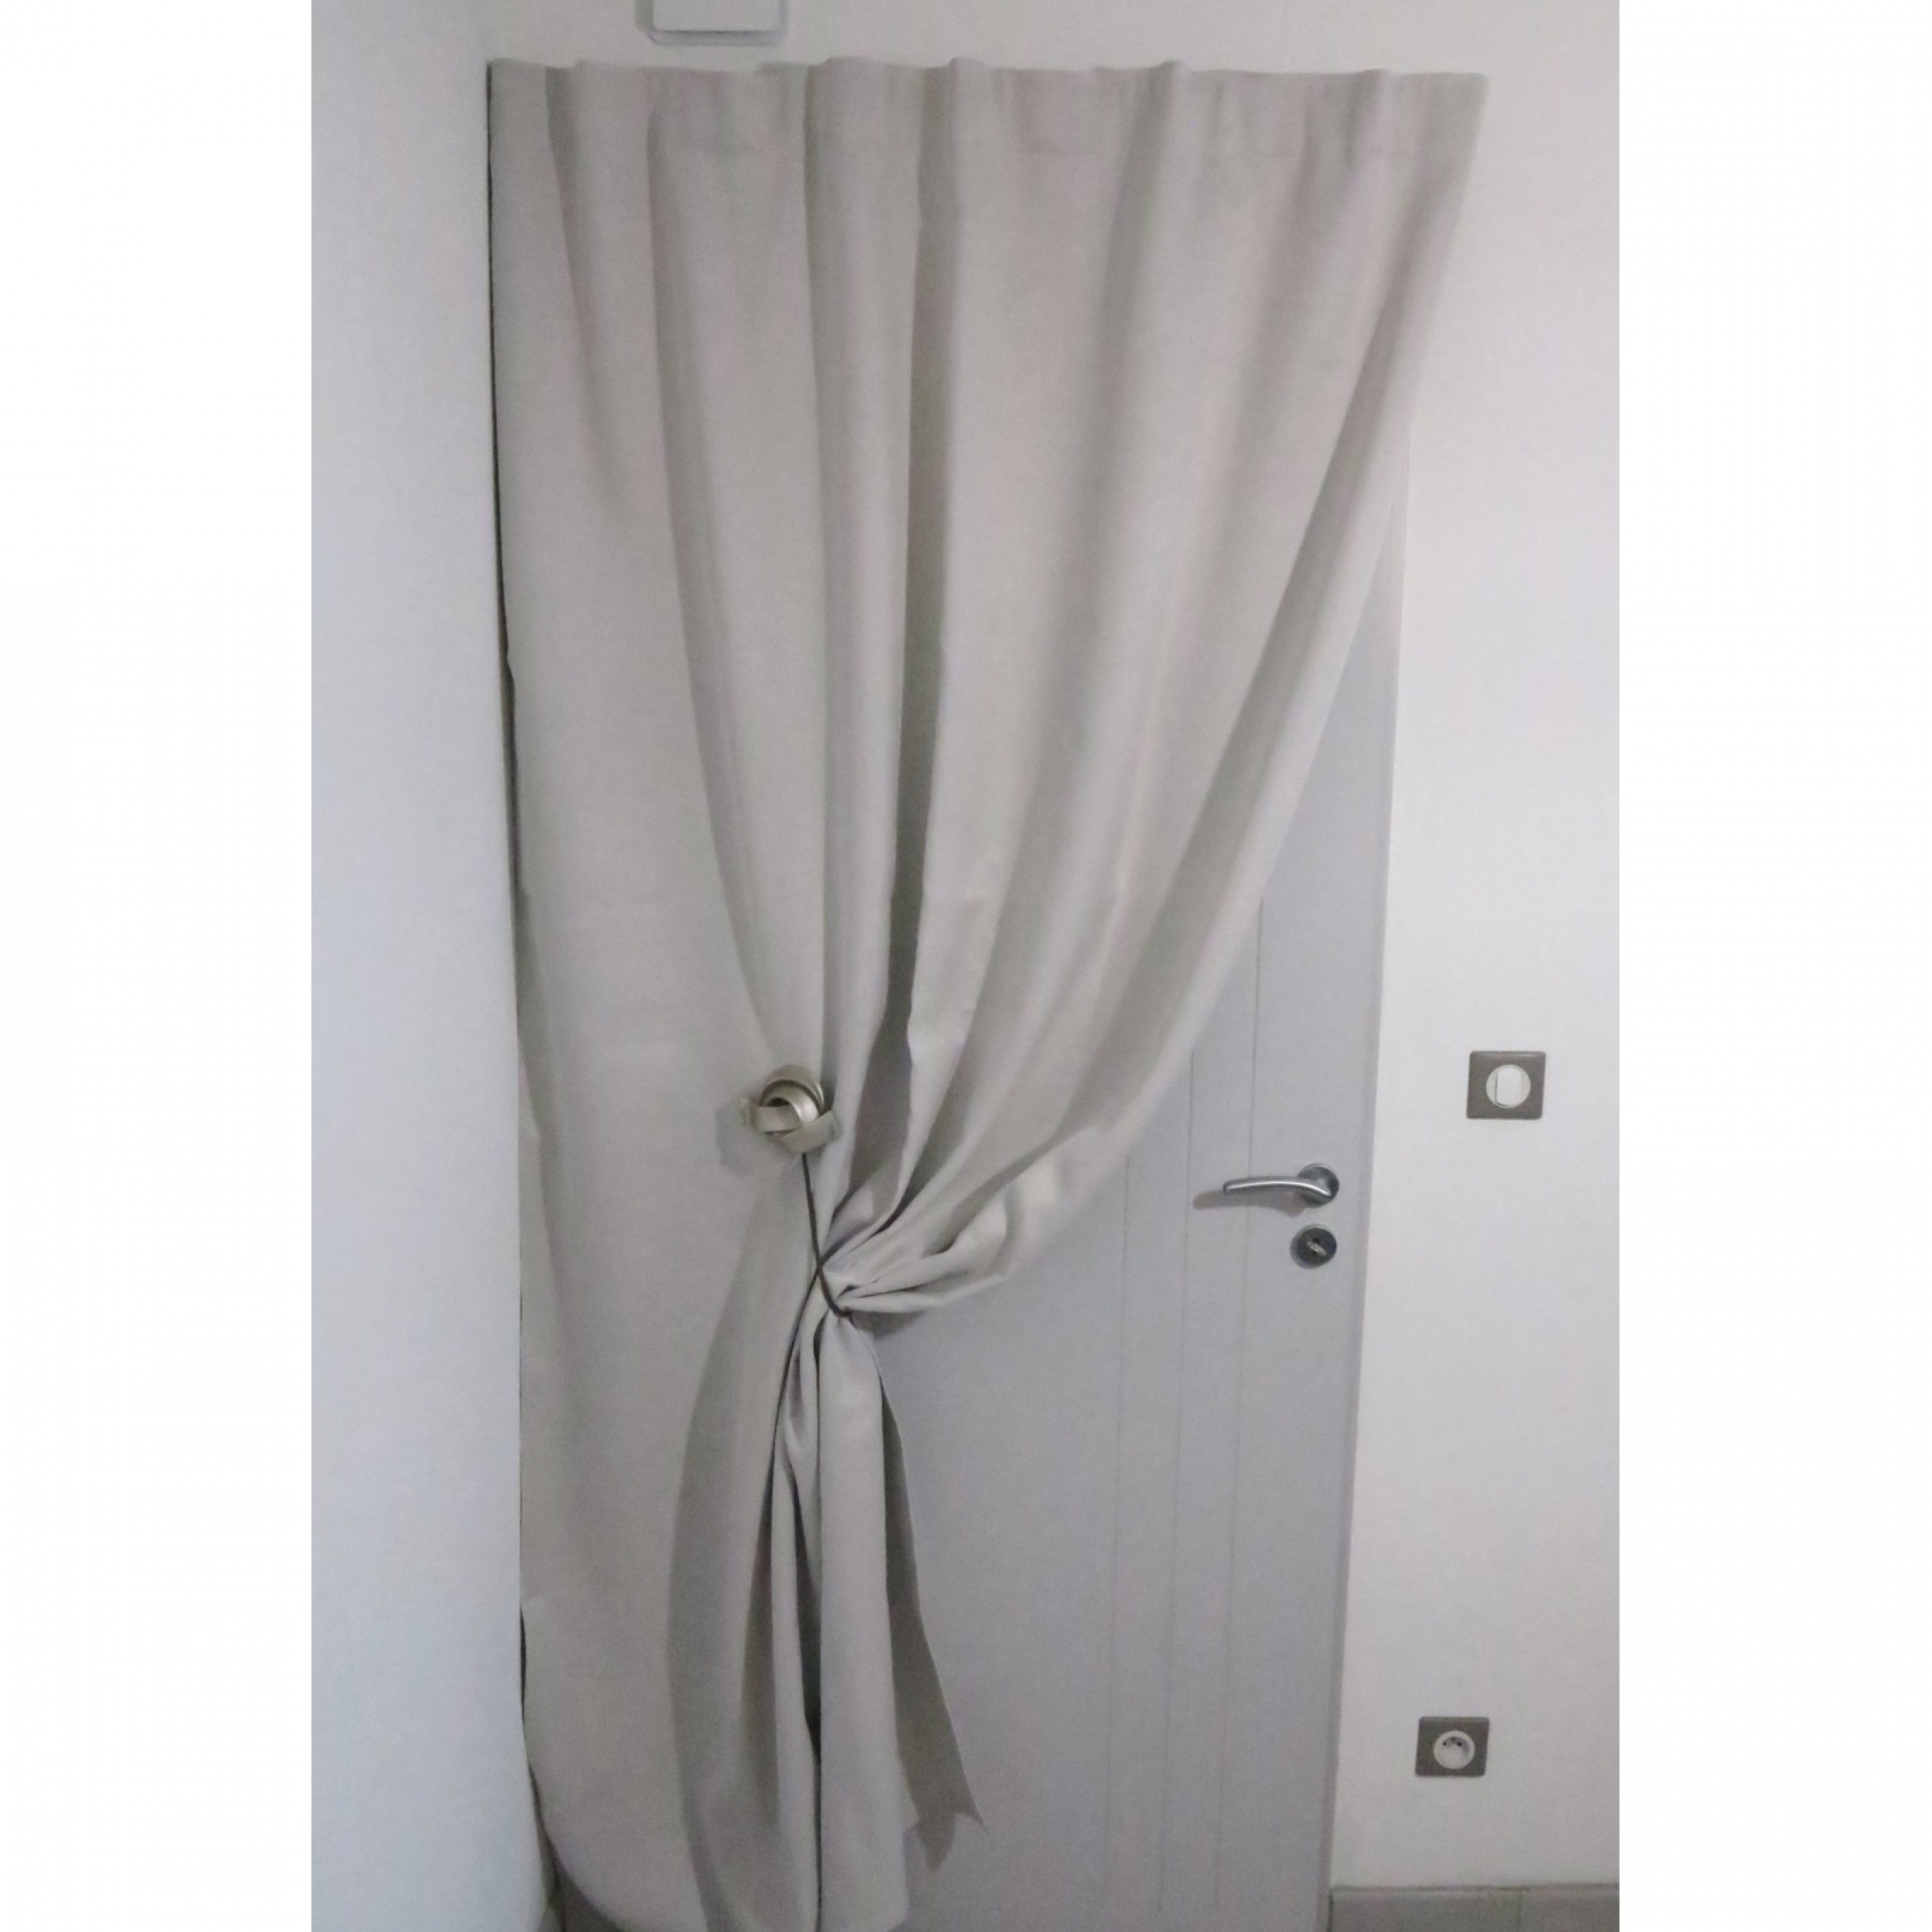 Tringle a rideau sans percer pour porte d entree - Tringle de porte leroy merlin ...